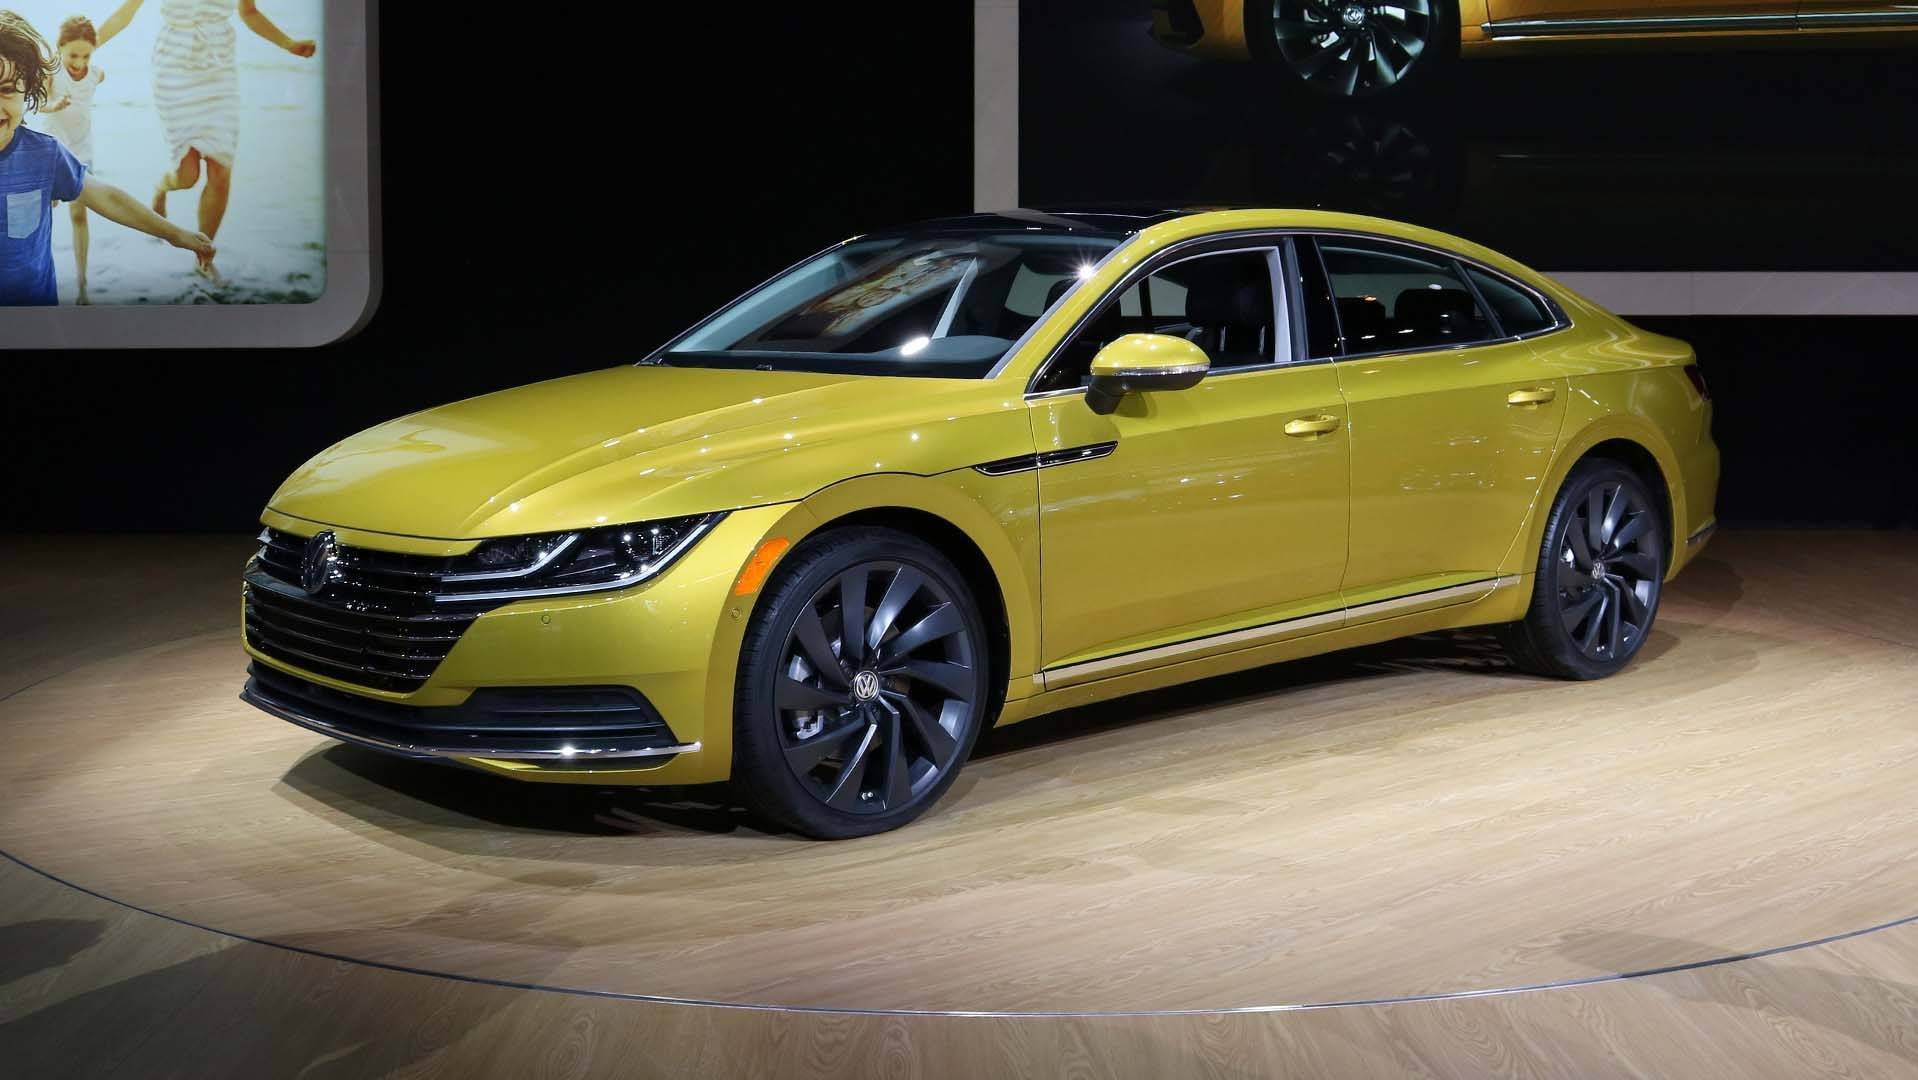 image coming tells chicago redesign vw auto show volkswagen view for larger passat